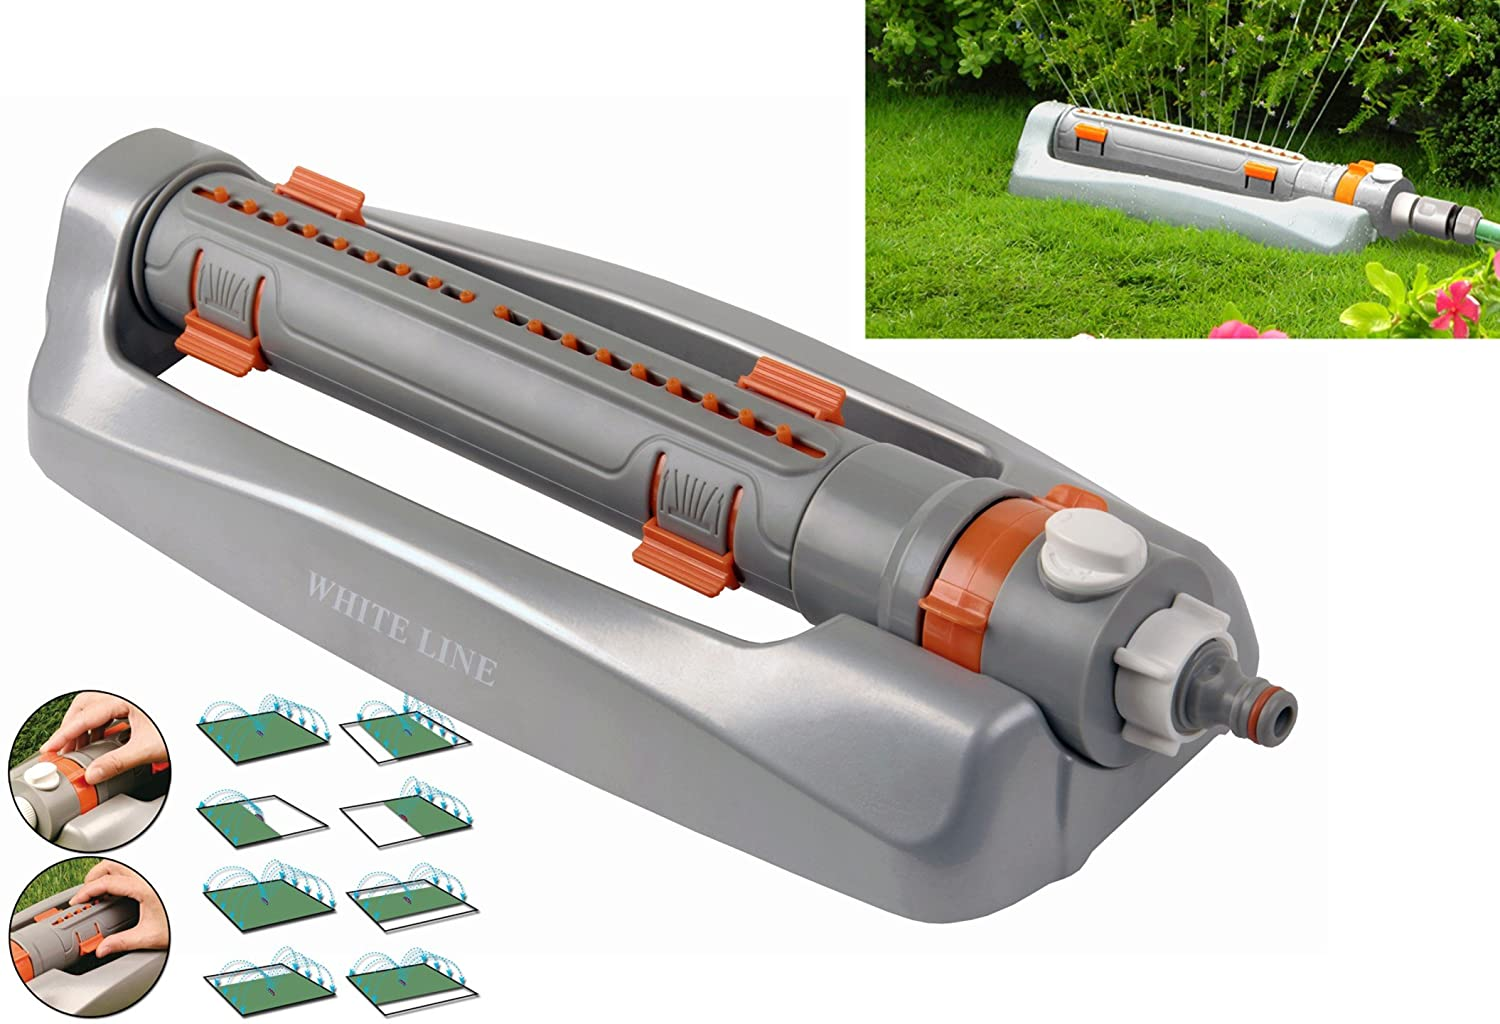 Costwise Oscillating Bar Sprinkler